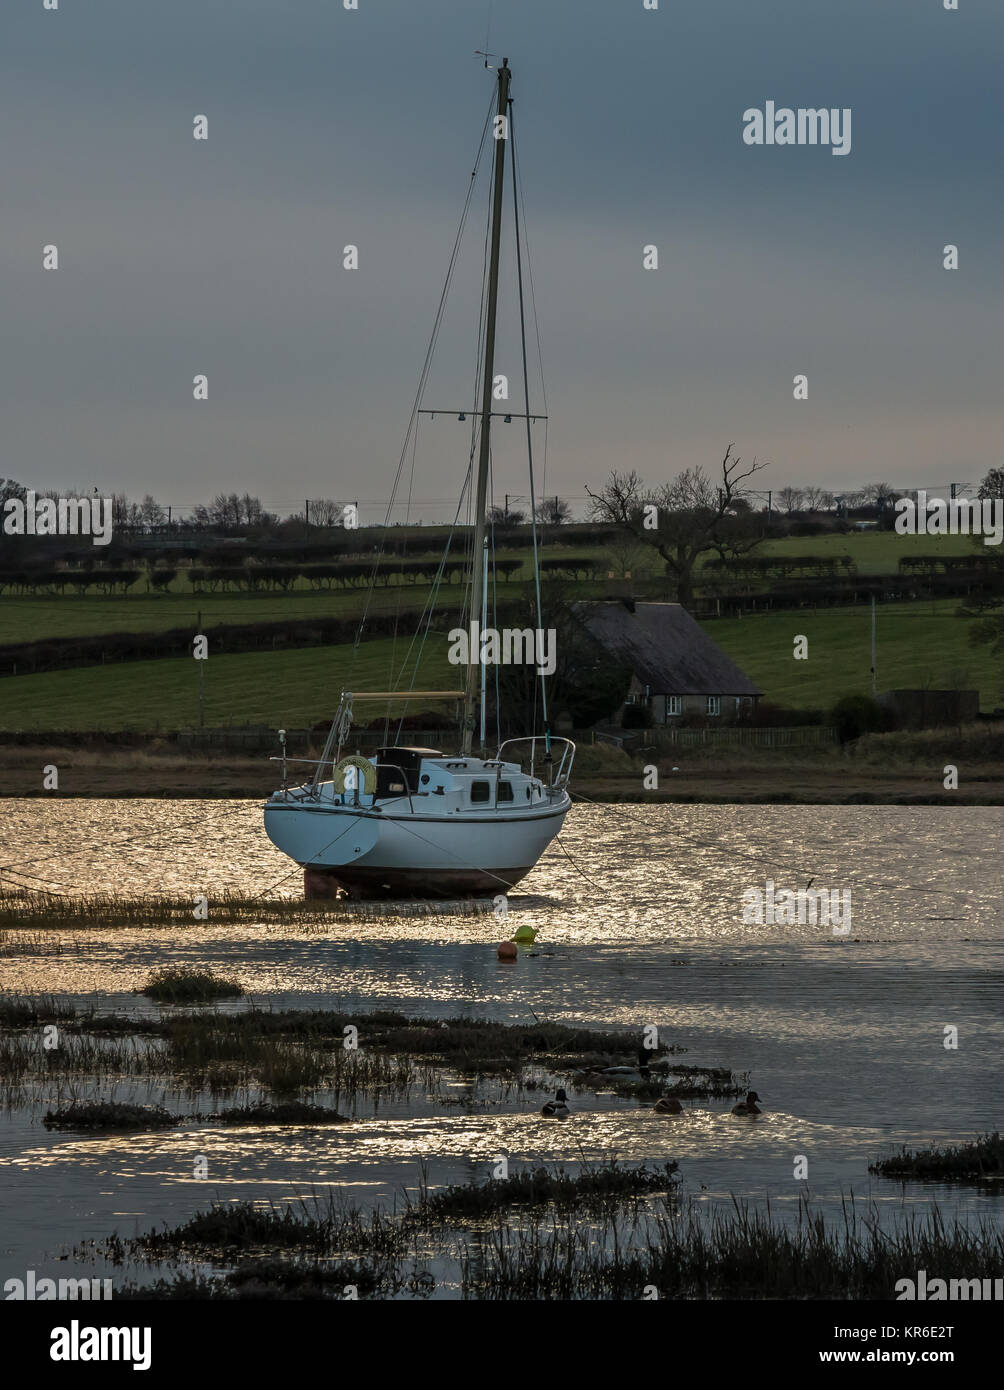 a-single-yacht-moored-in-alnmouth-harbou